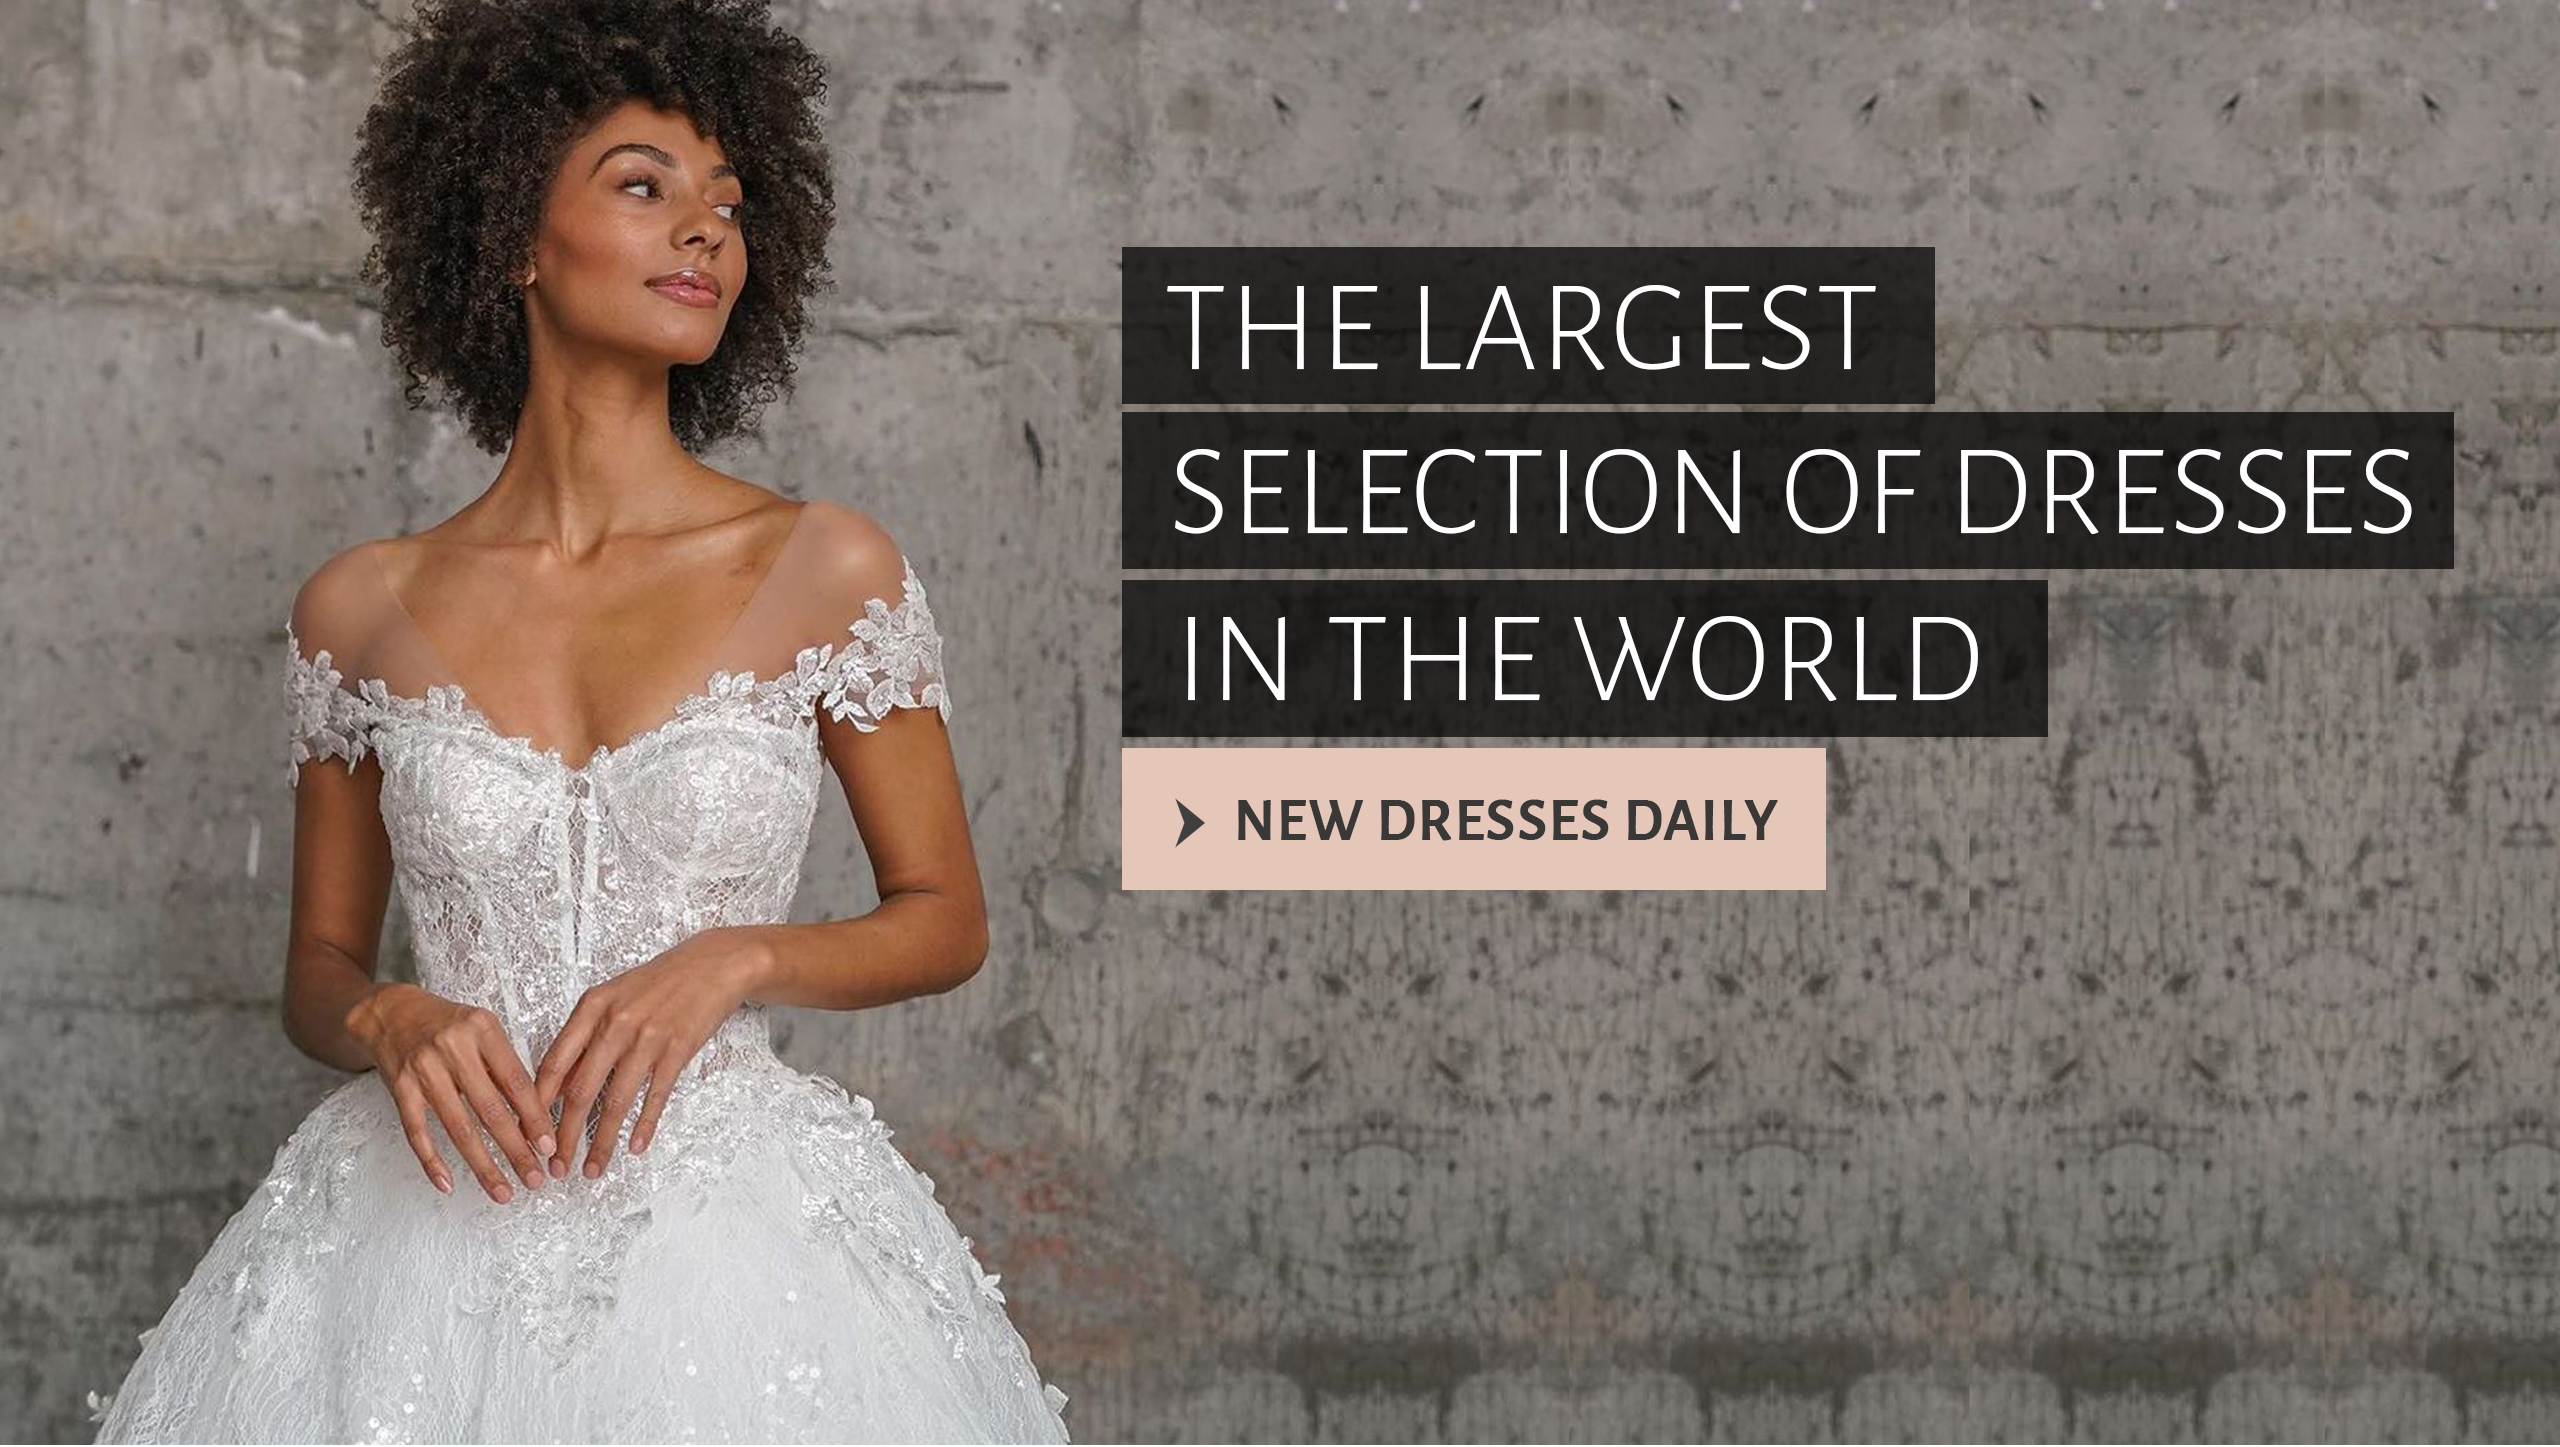 Kleinfeld Bridal The Largest Selection Of Wedding Dresses In The World,Cocktail Dress Wedding Guest